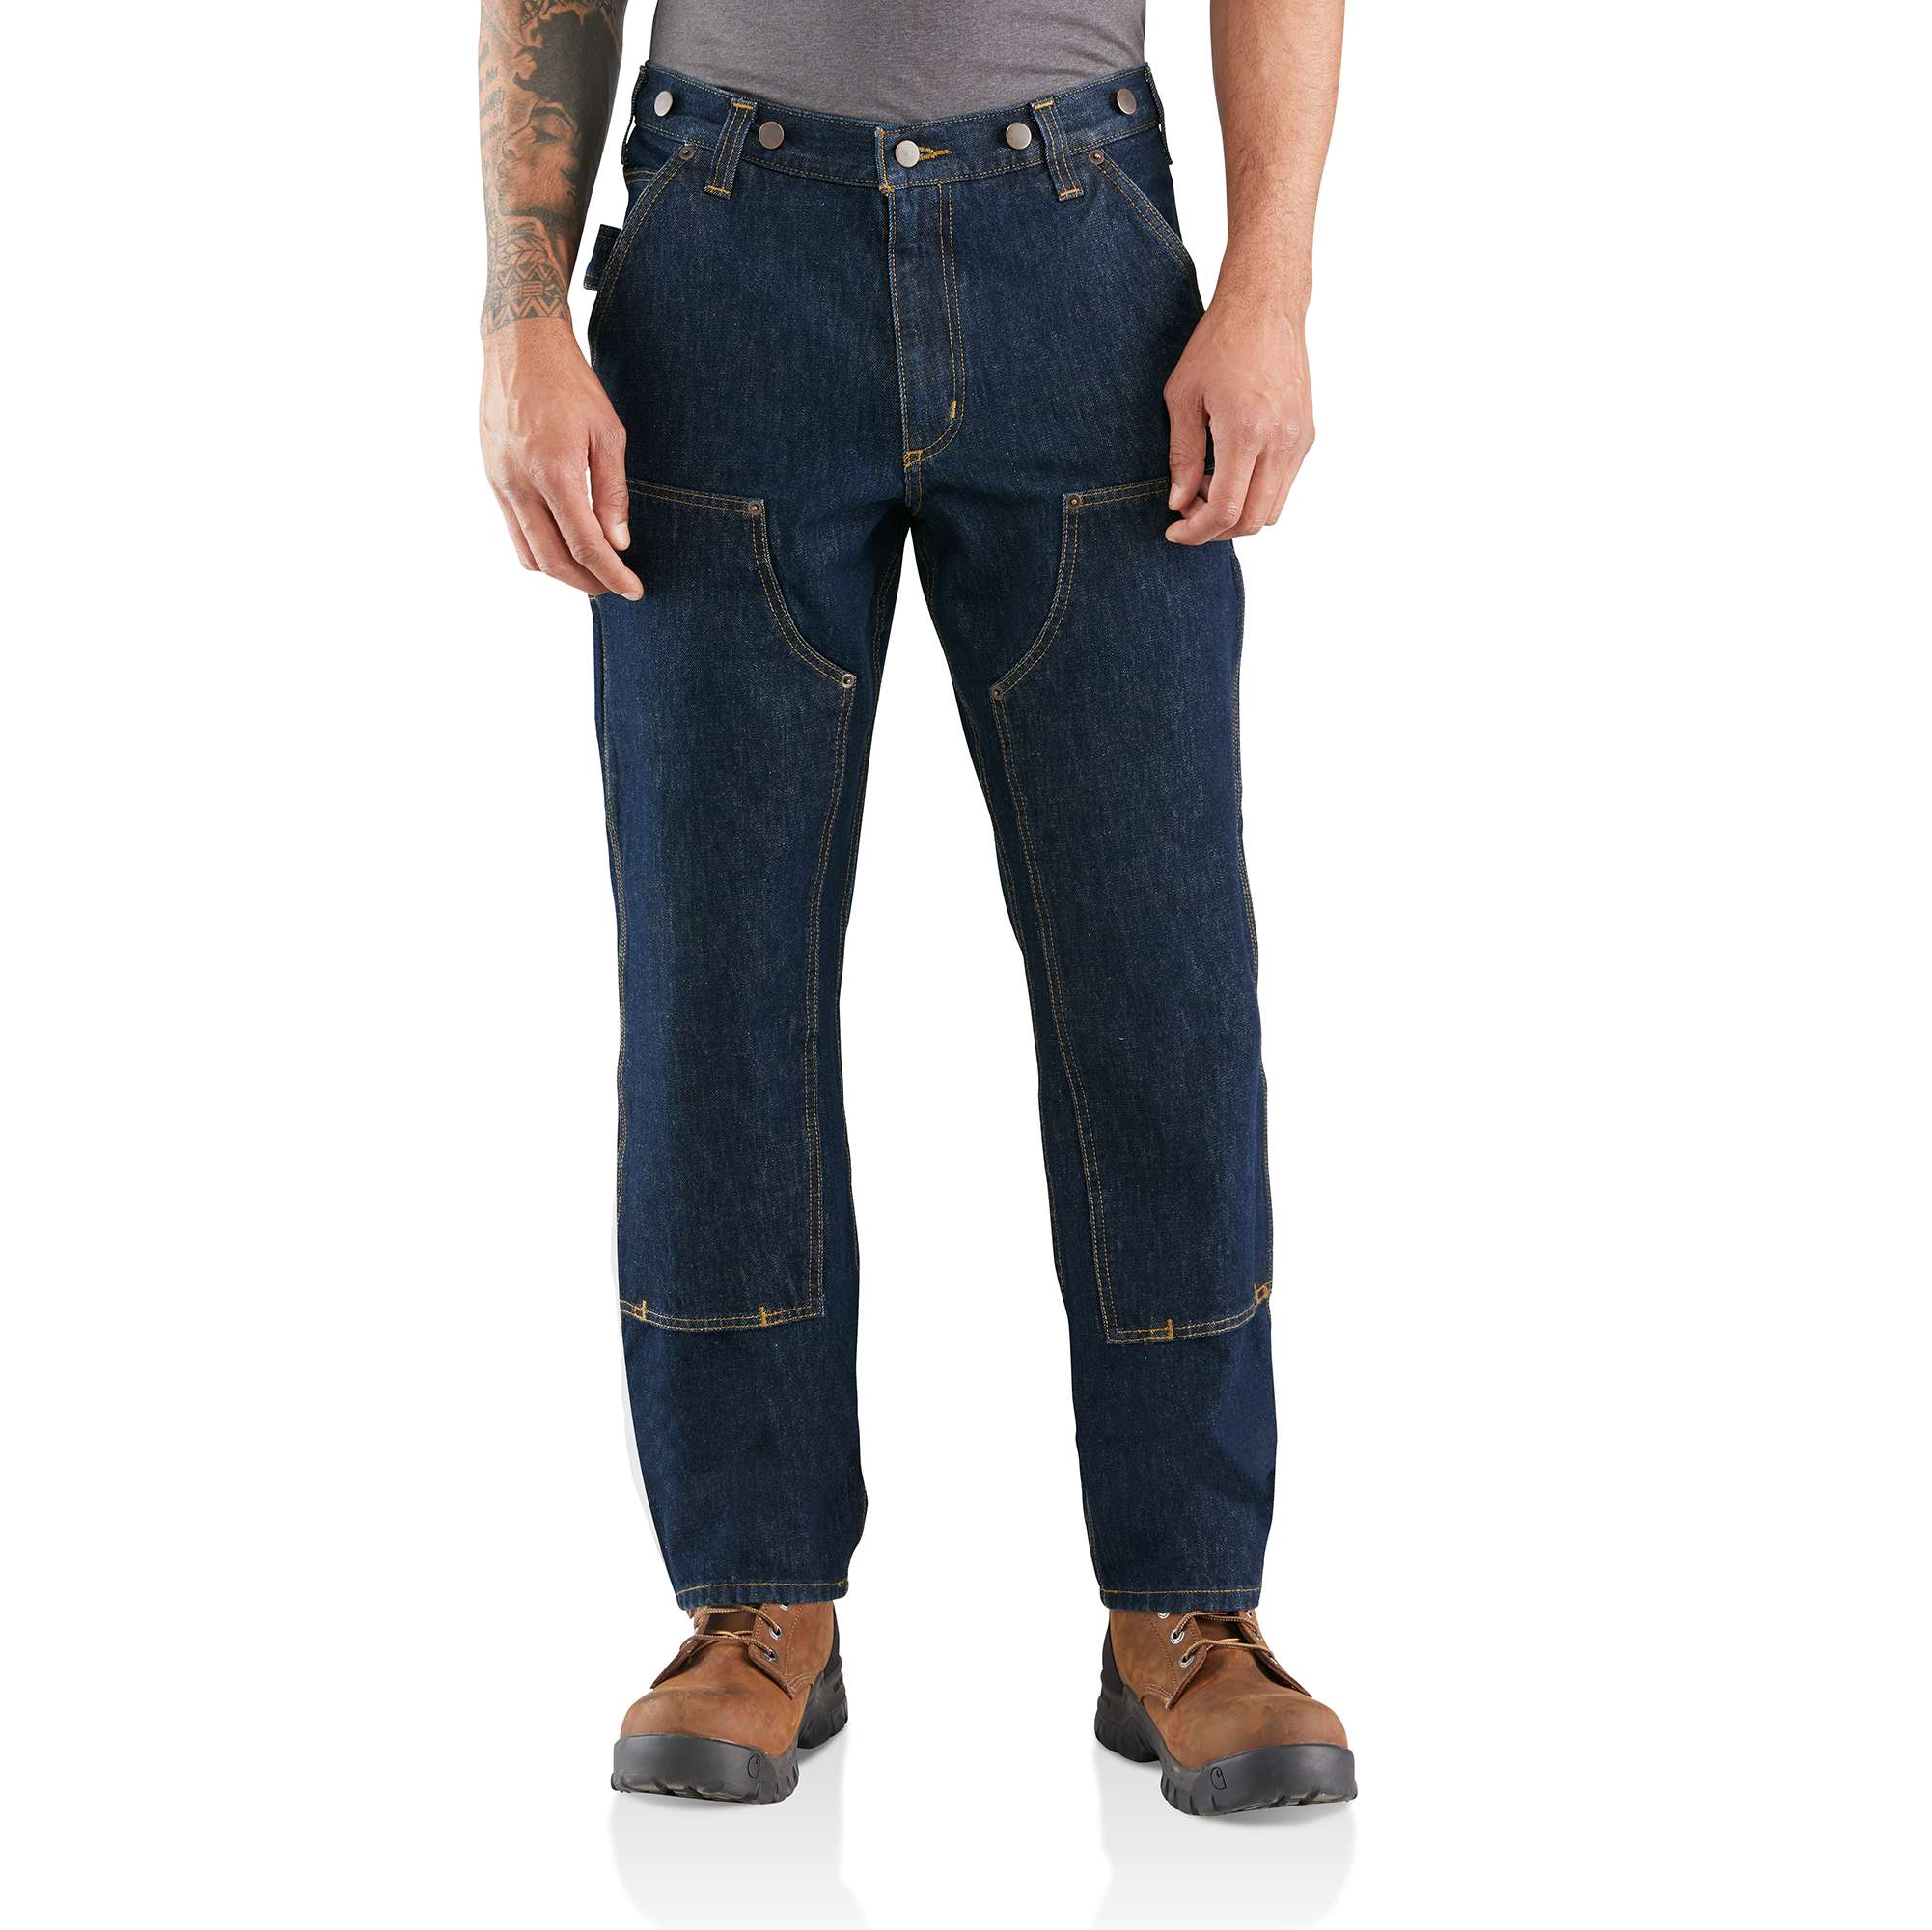 Carhartt Rugged Flex Relaxed Fit Utility Logger Jeans